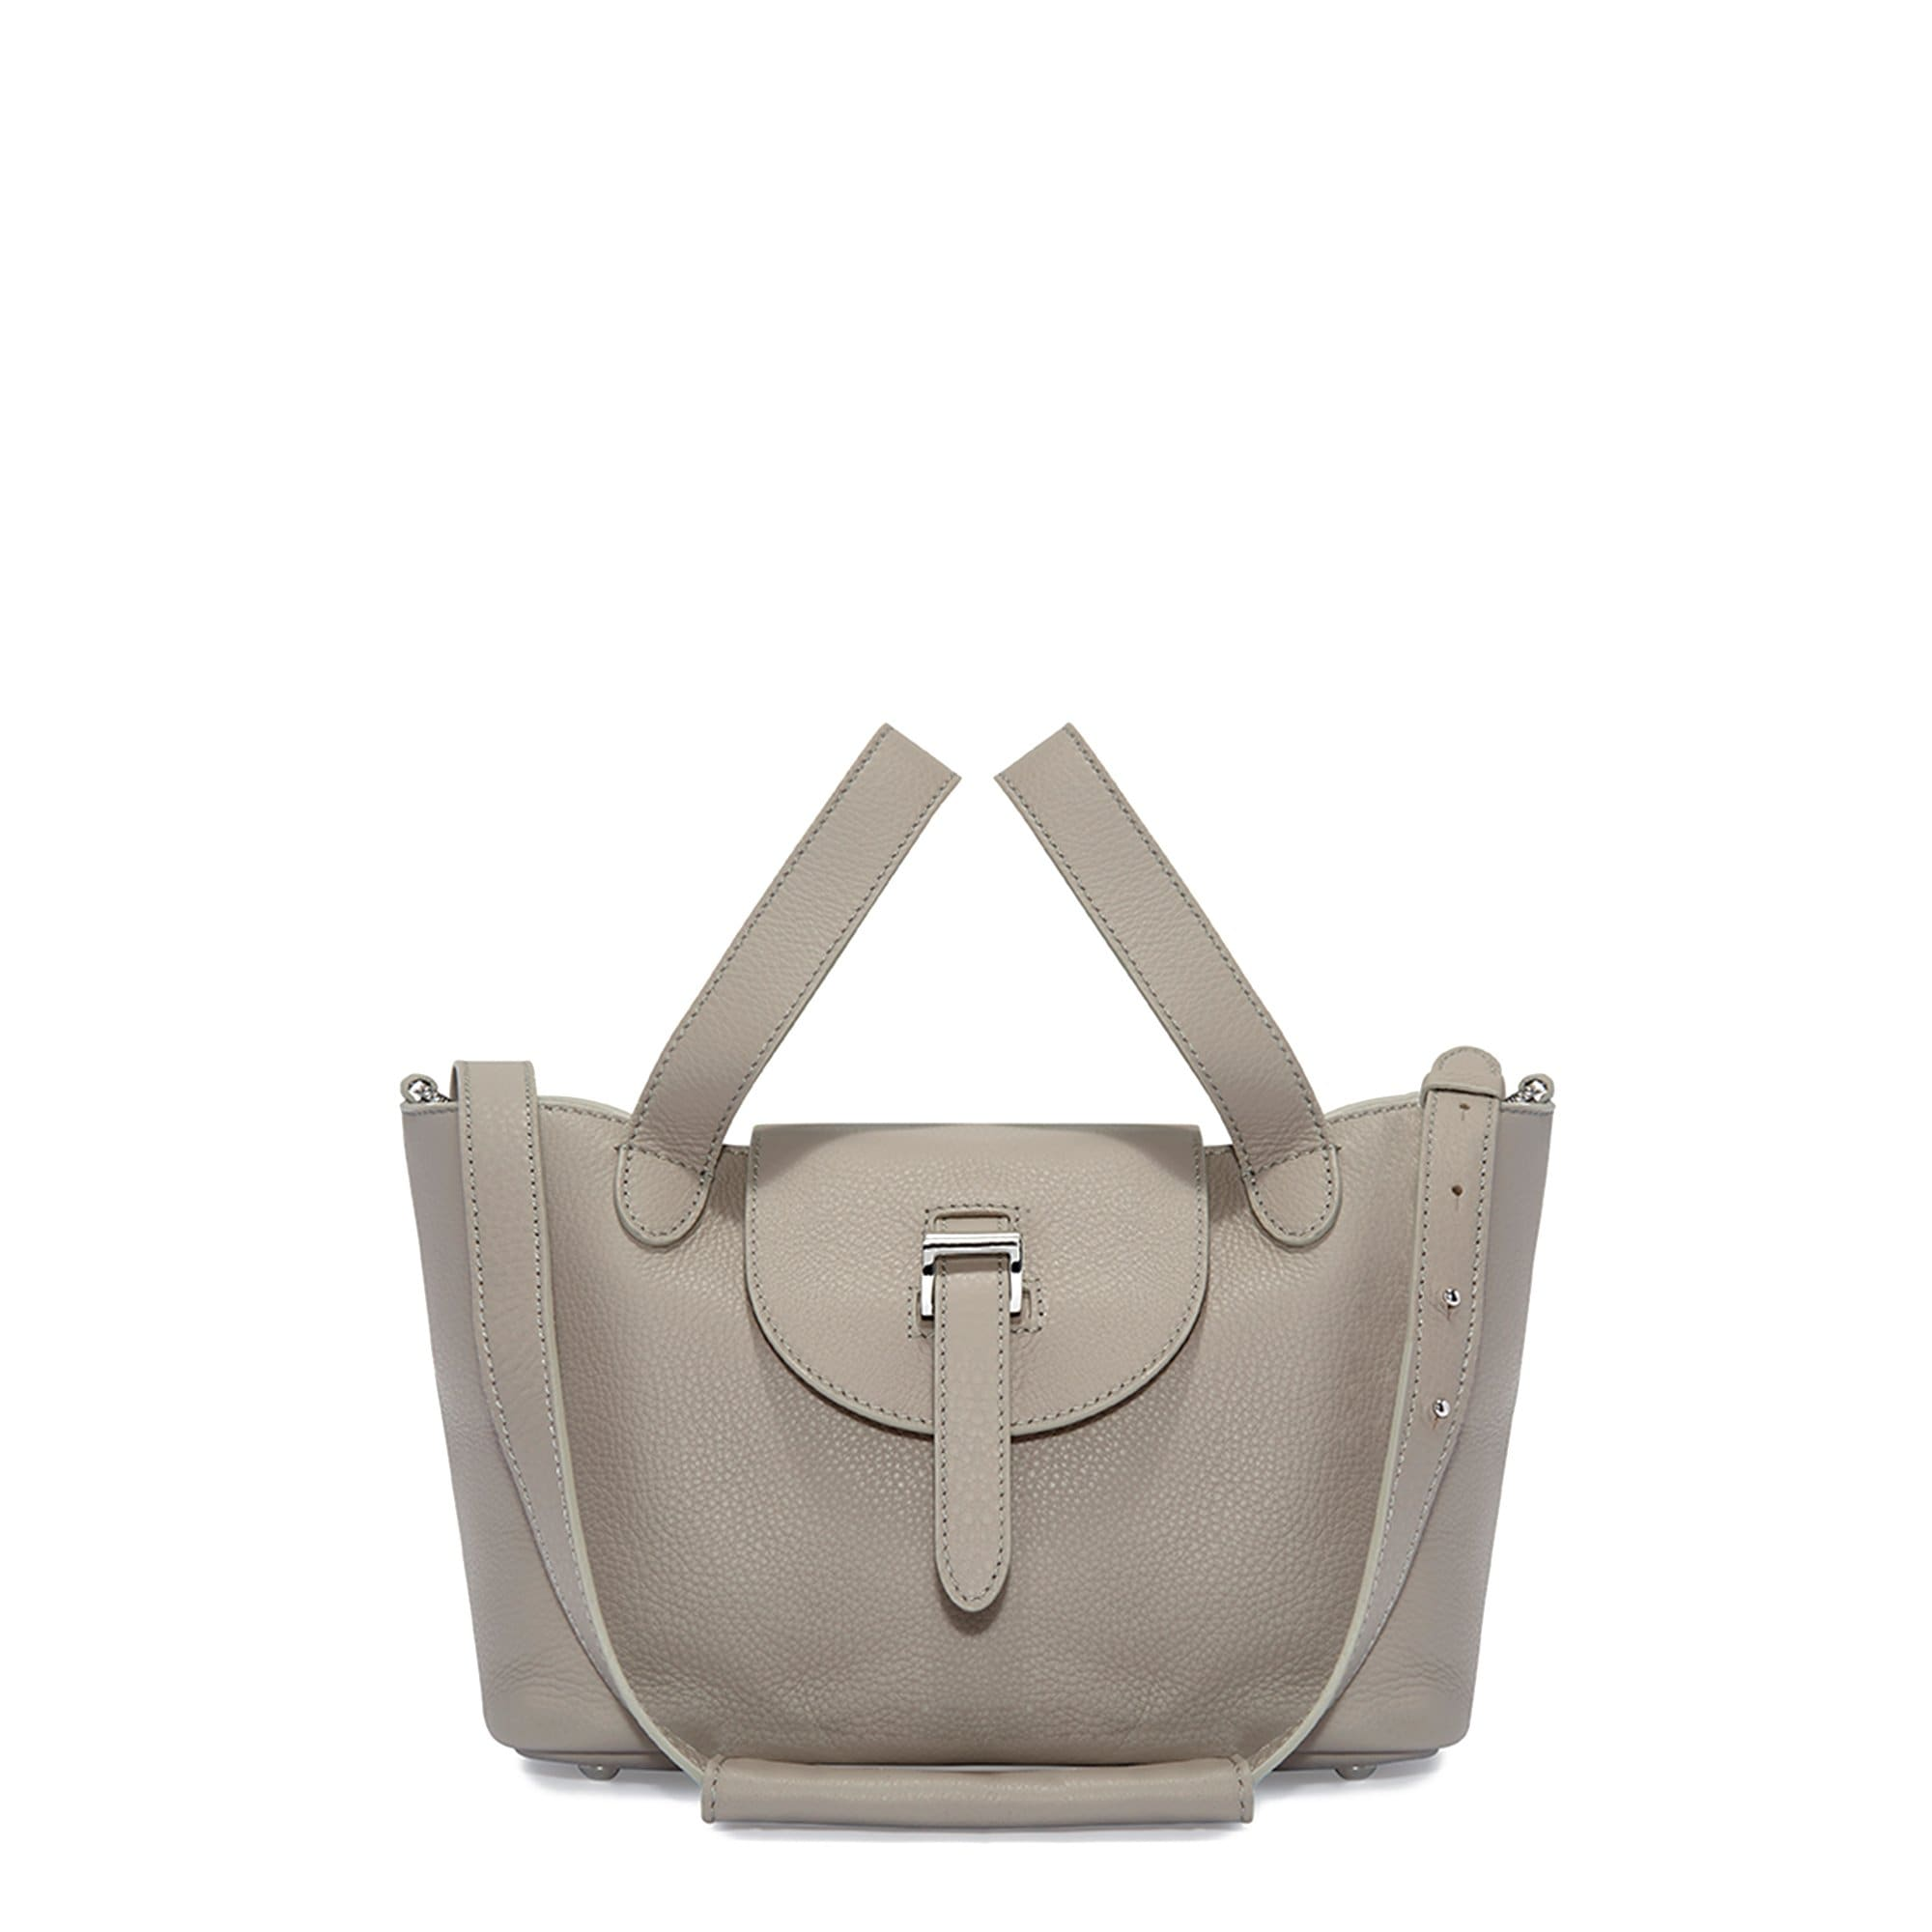 Thela Mini Taupe Grey with Zip Closure Cross Body Bag  for Women - meli melo Official